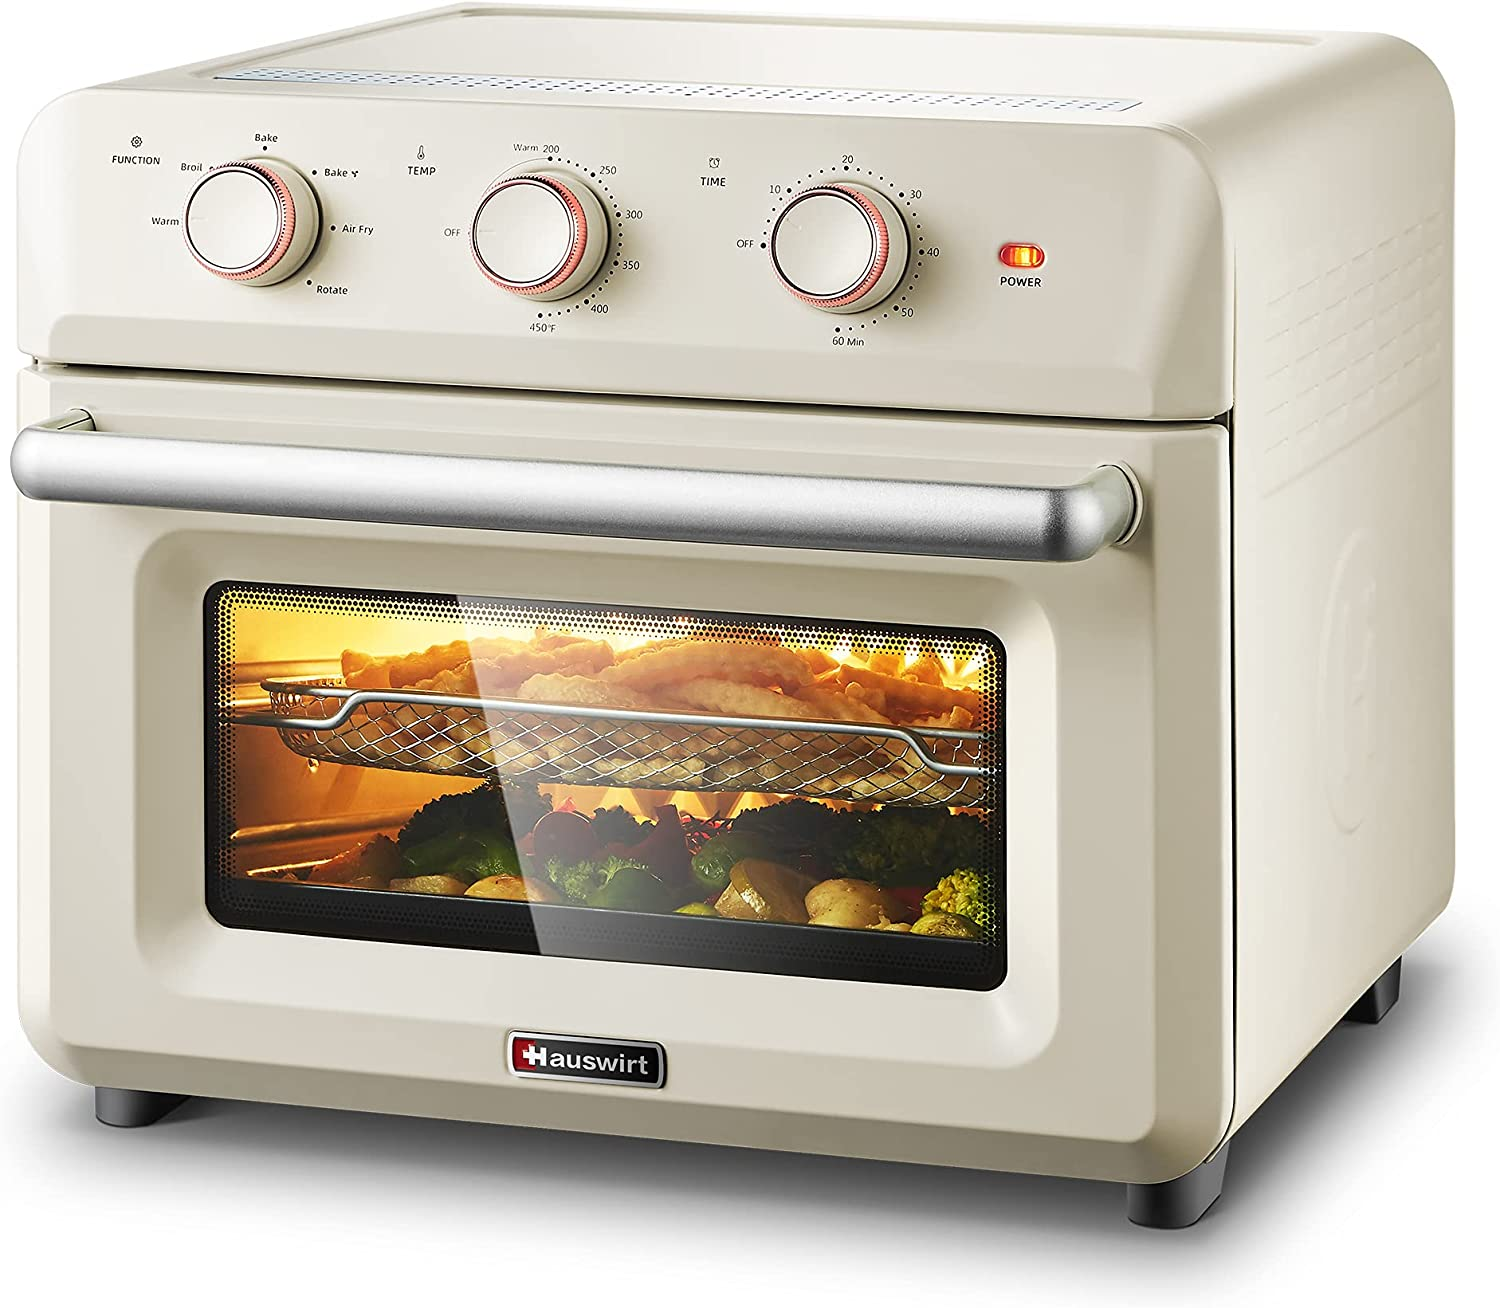 """Hauswirt 6-IN-1 Air Fryer Oven, 26Qt XL Capacity, Convection Cooking To Toast, Air Fry, Bake, Broil, Grill, Roast Chicken, Reheat 12"""" Pizza, Keep Warm For Large Family - Retro Cream White"""